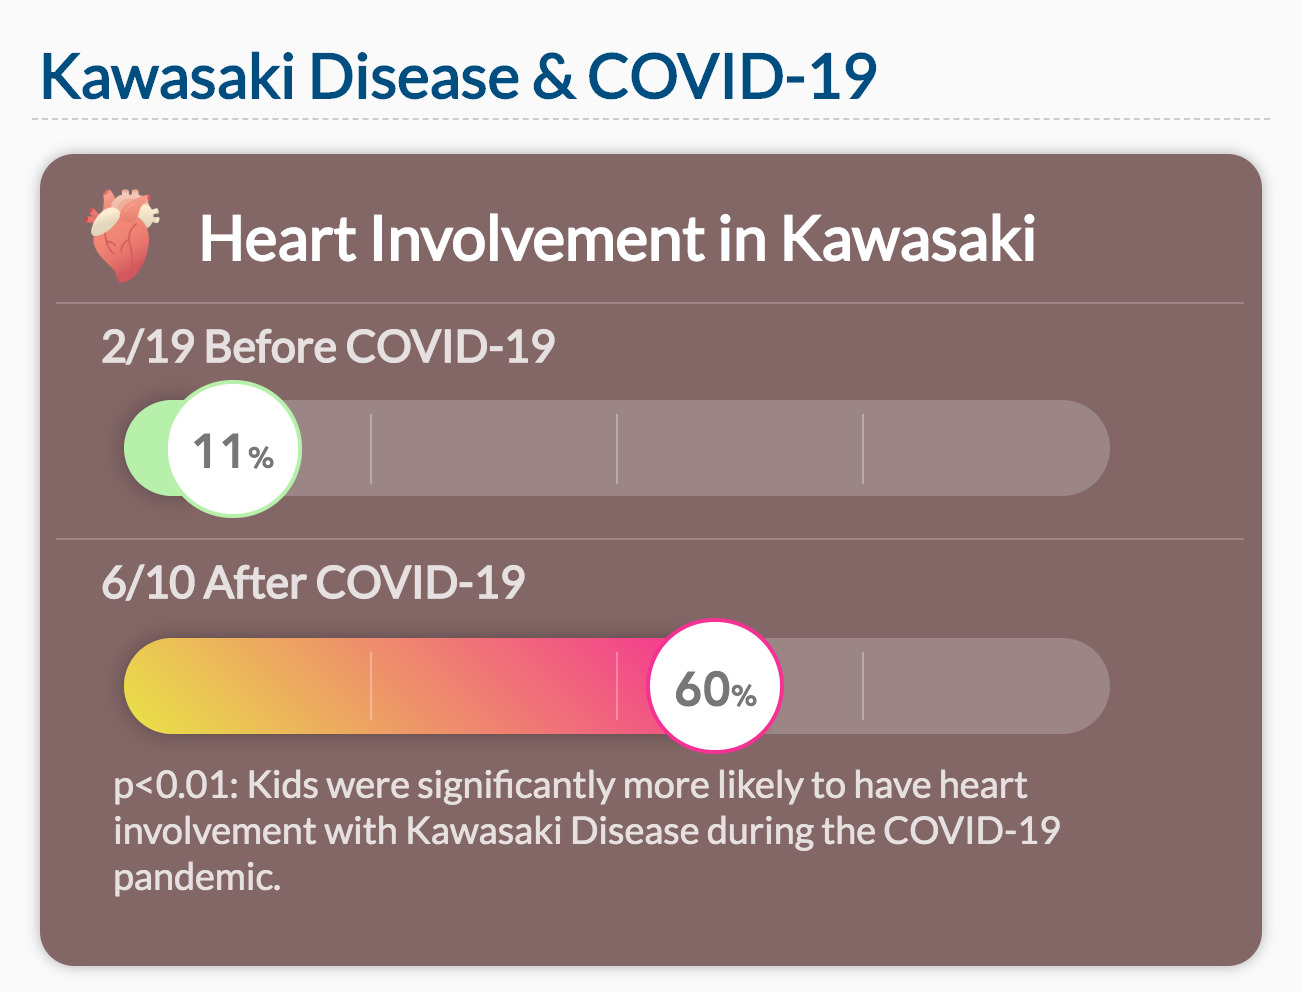 Kids were significantly more likely to have heart involvement with Kawasaki Disease during the COVID-19 pandemic.